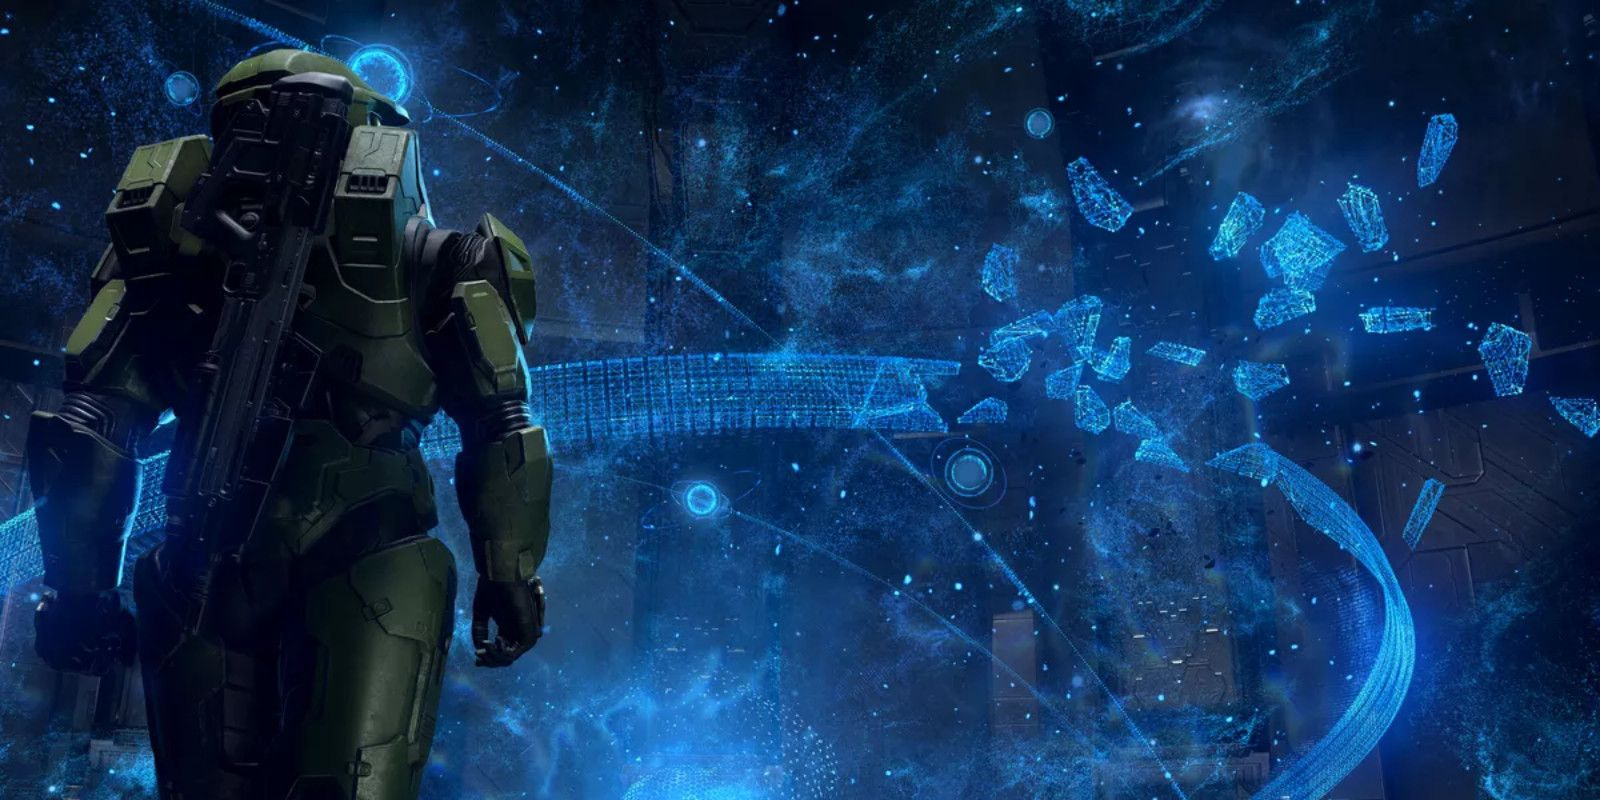 Halo Infinite Multiplayer Rumor Points To a Battle Royale Mode.'